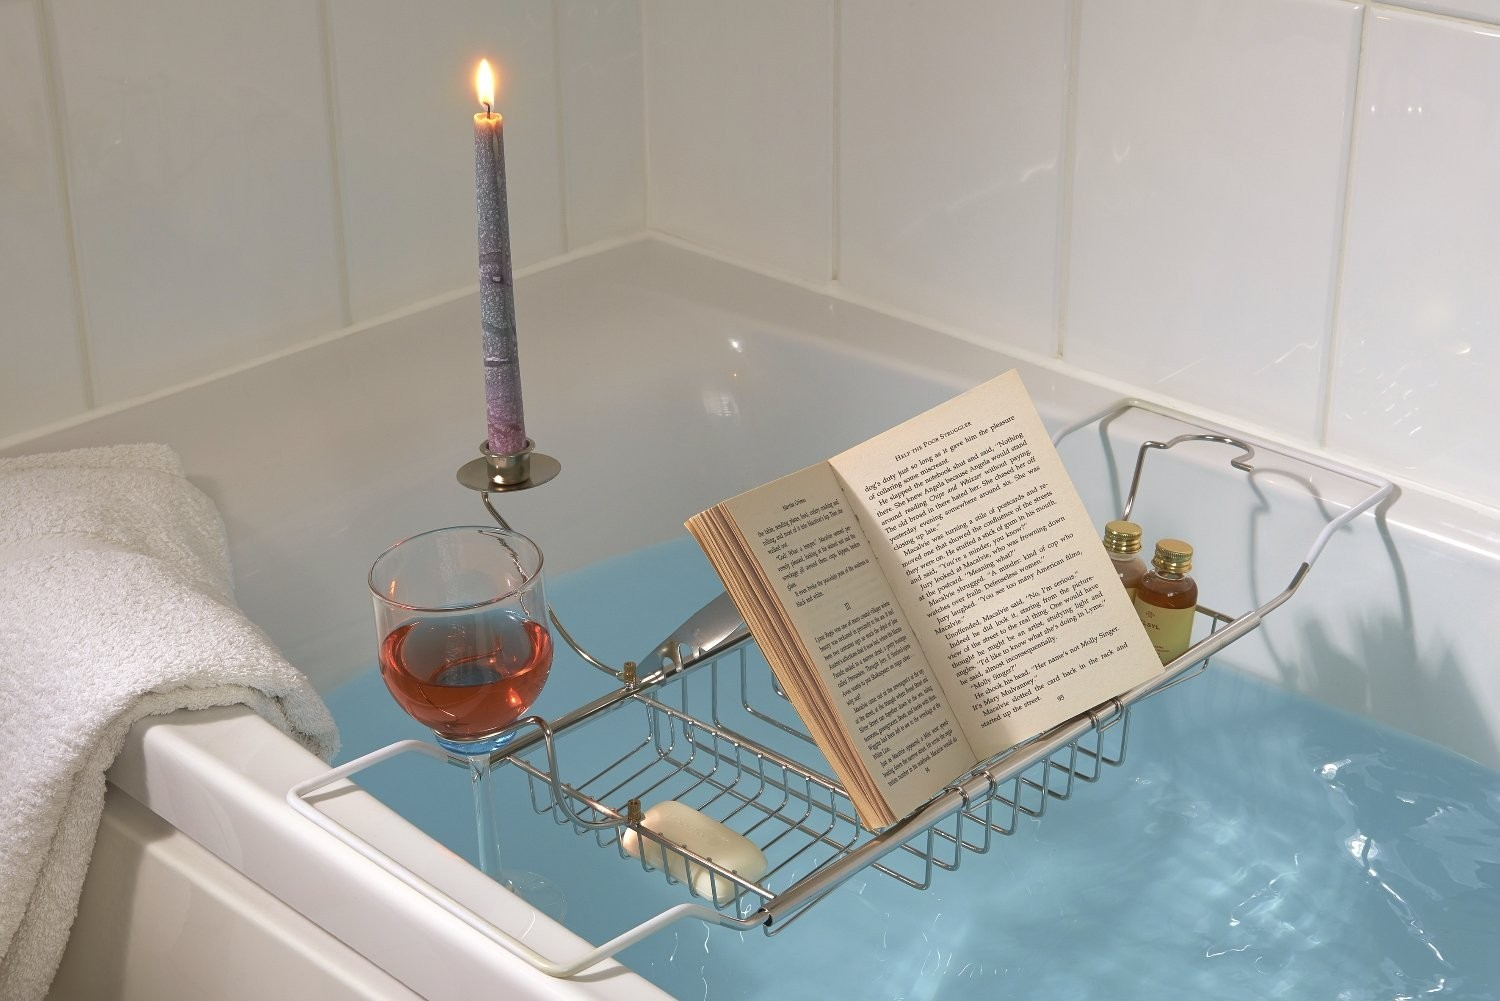 Bath Caddy with Wine Glass, Candle & Book Holder - Safield Distribution